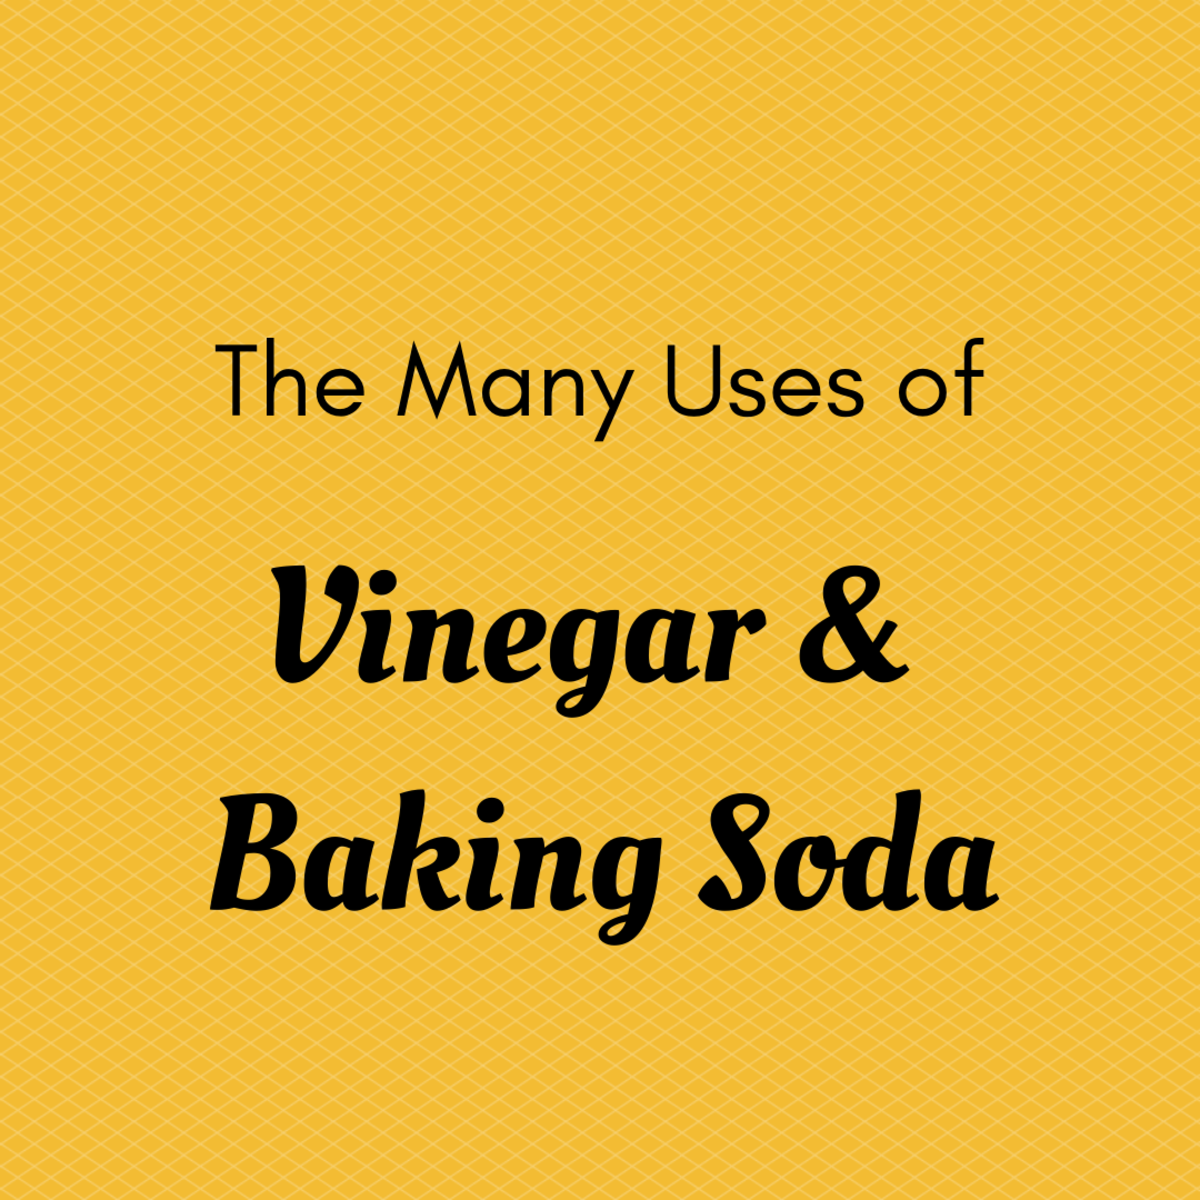 Use vinegar and baking soda for cleaning, gardening, bread baking, and more!